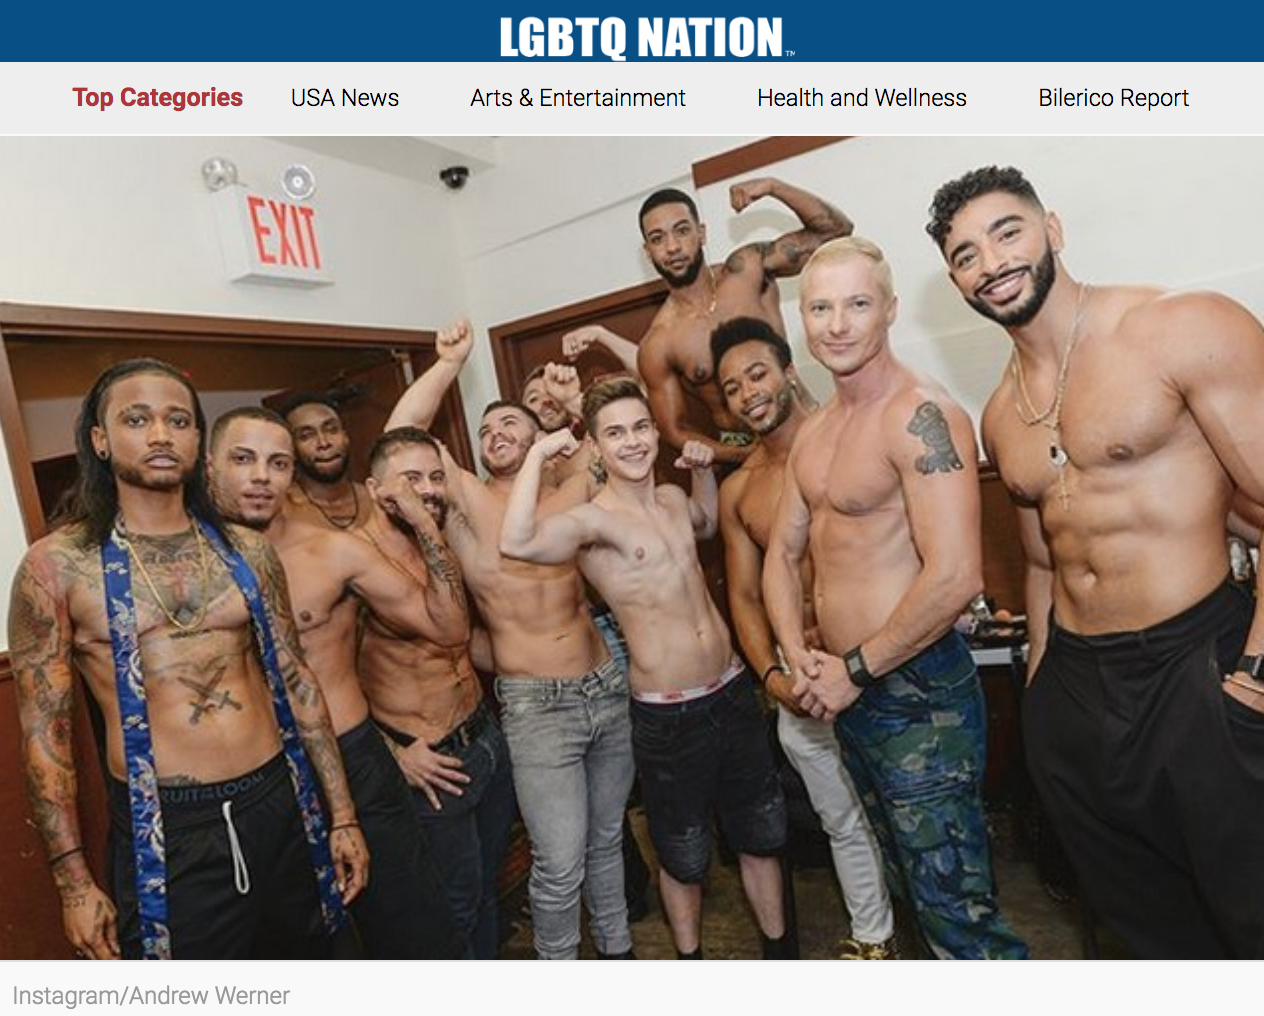 LGBTQ NATION - 34 models slayed the runway in Marco Marco's100% transgender fashion show